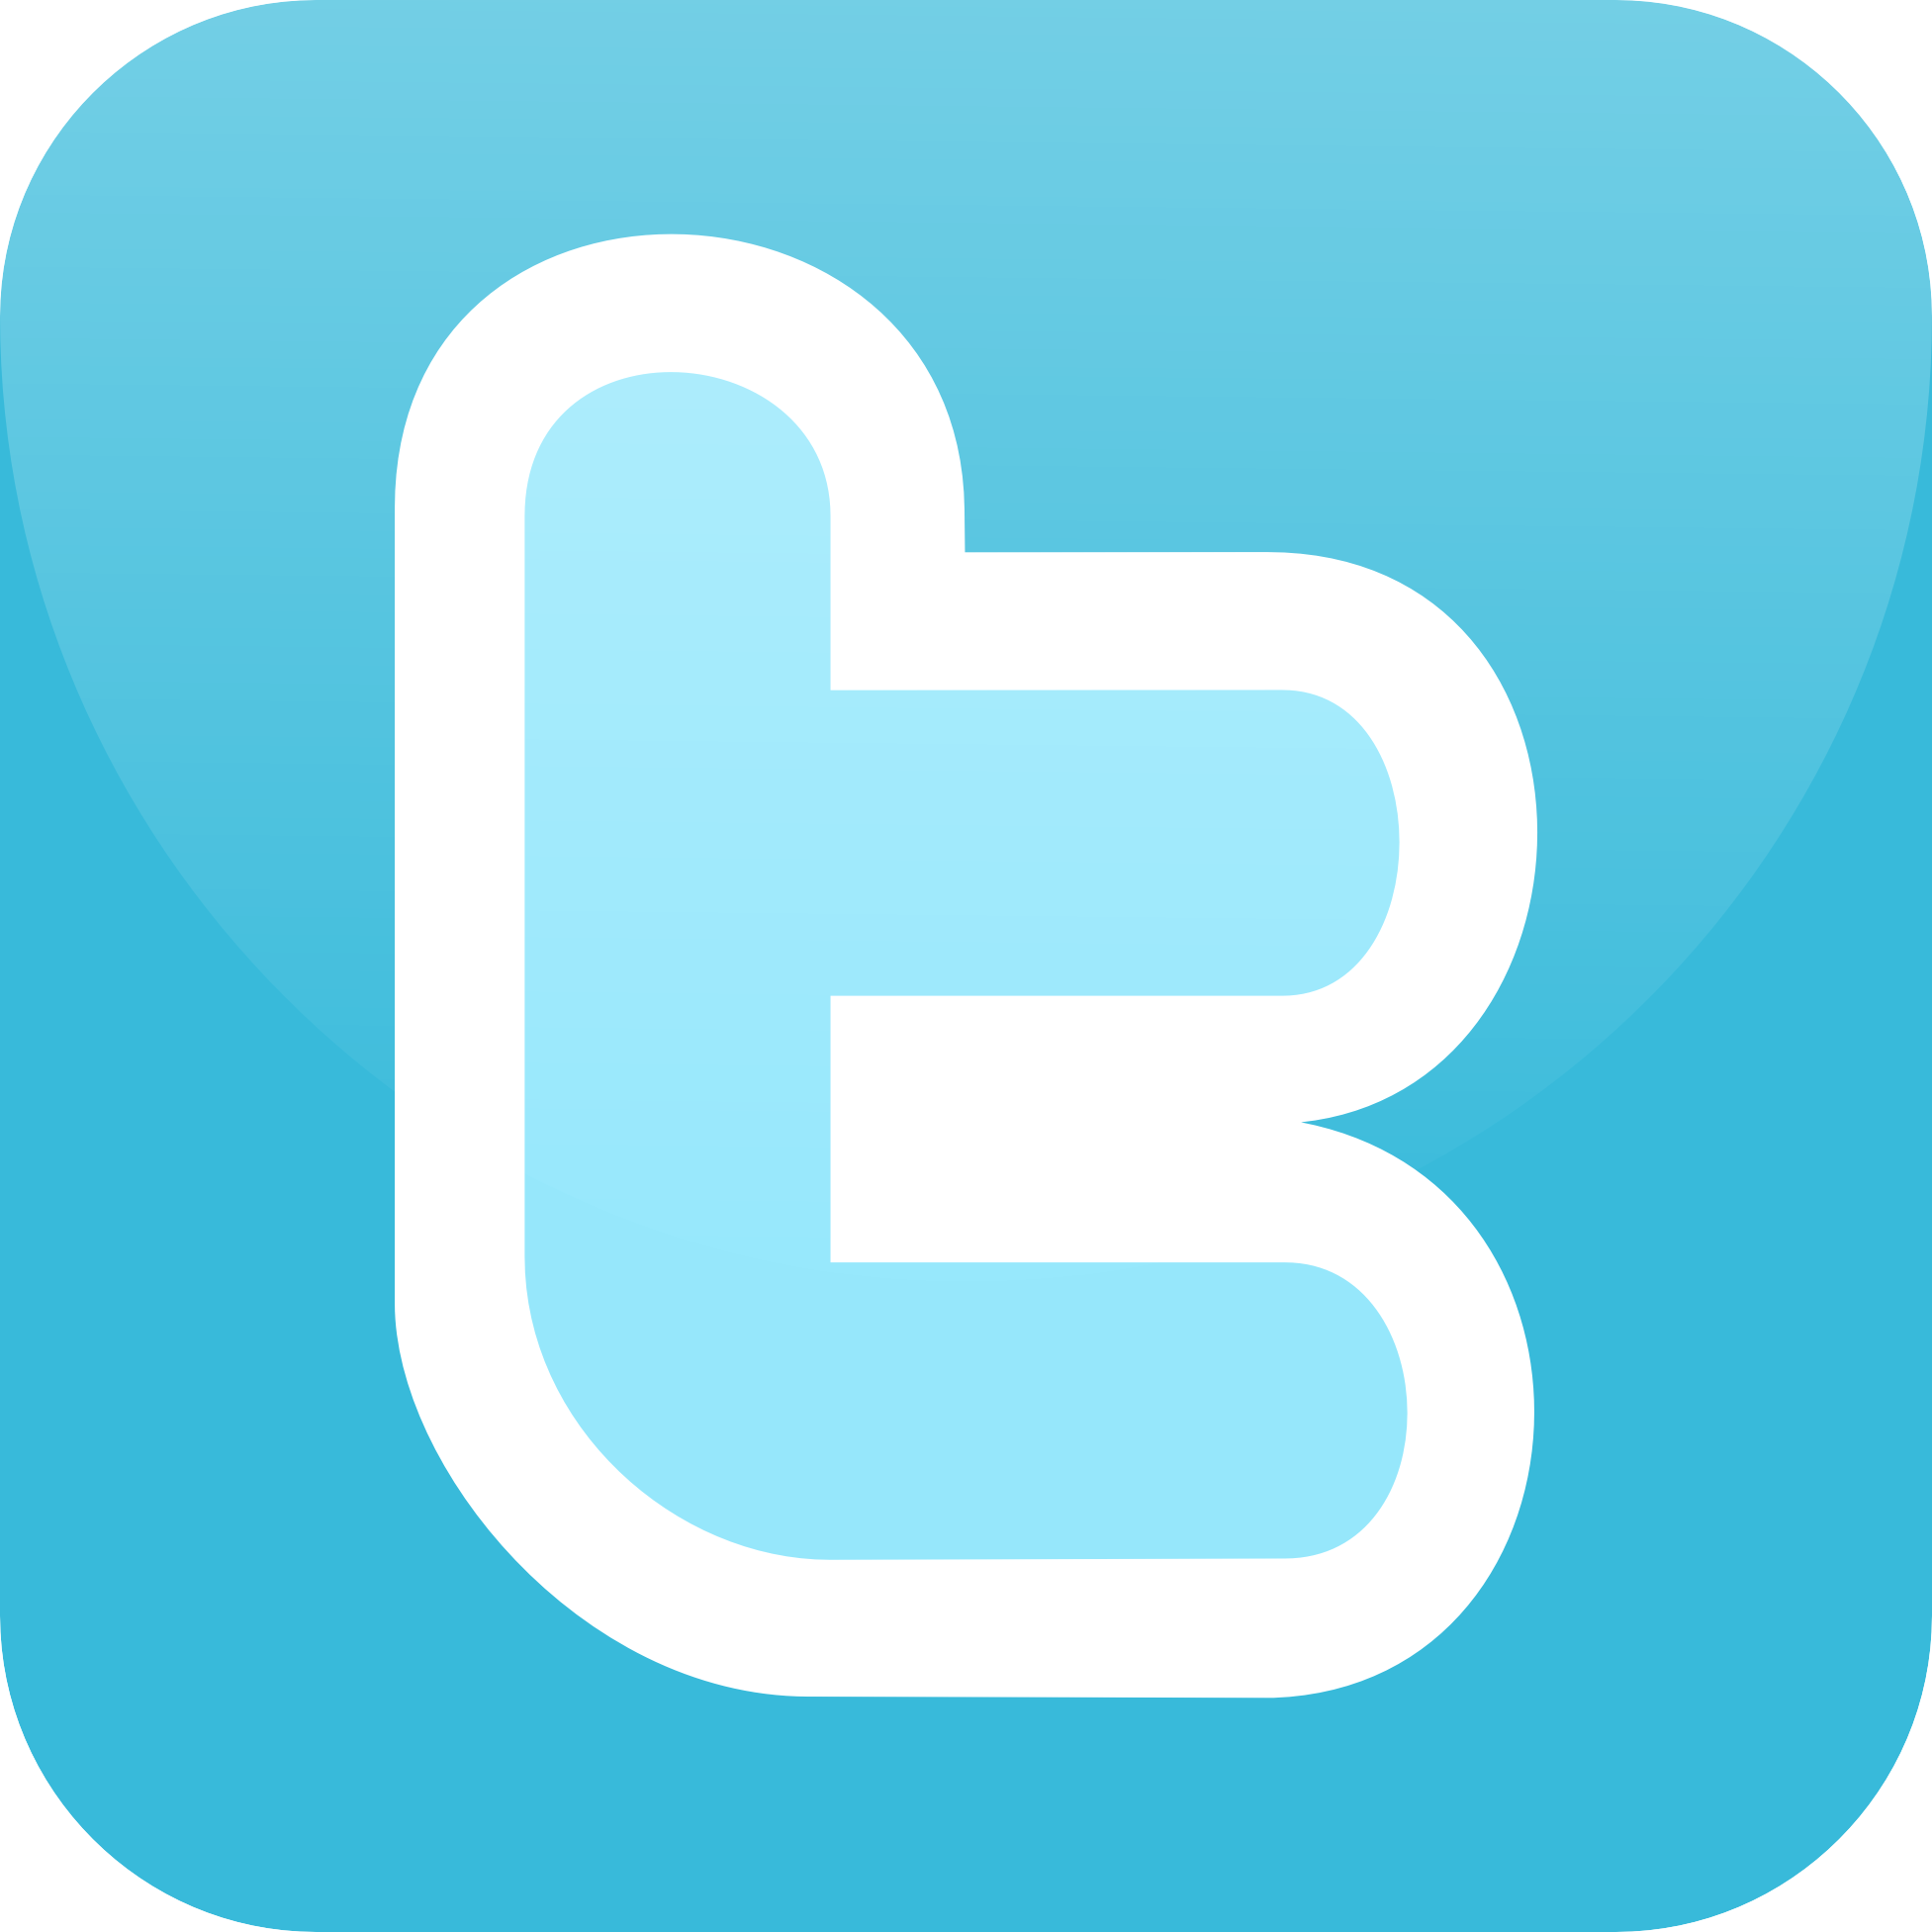 Twitter PNG - 7147